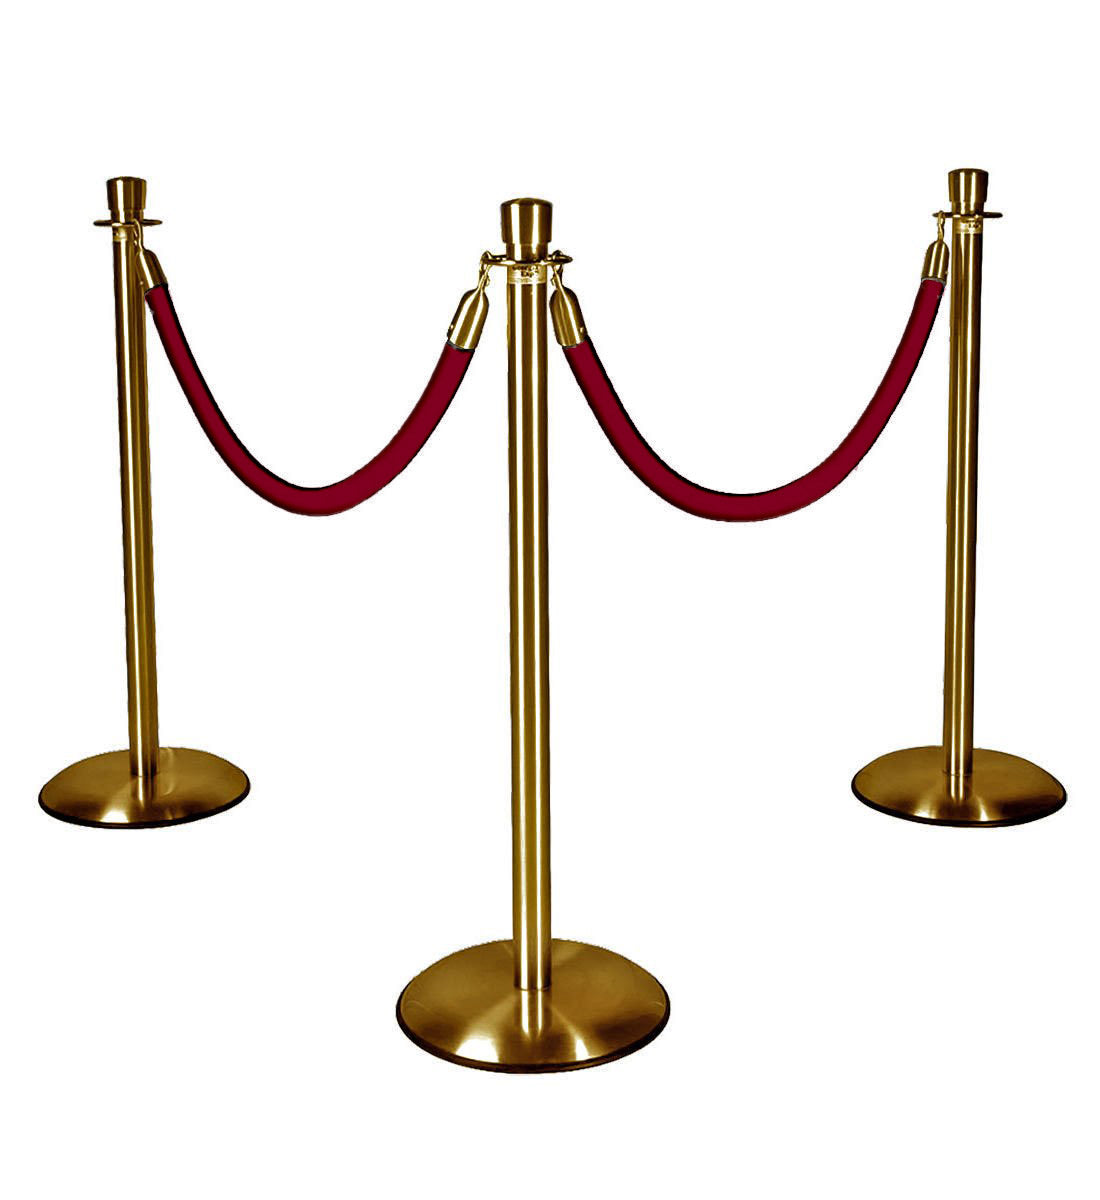 Gold Stanchions with Burgundy Ropes